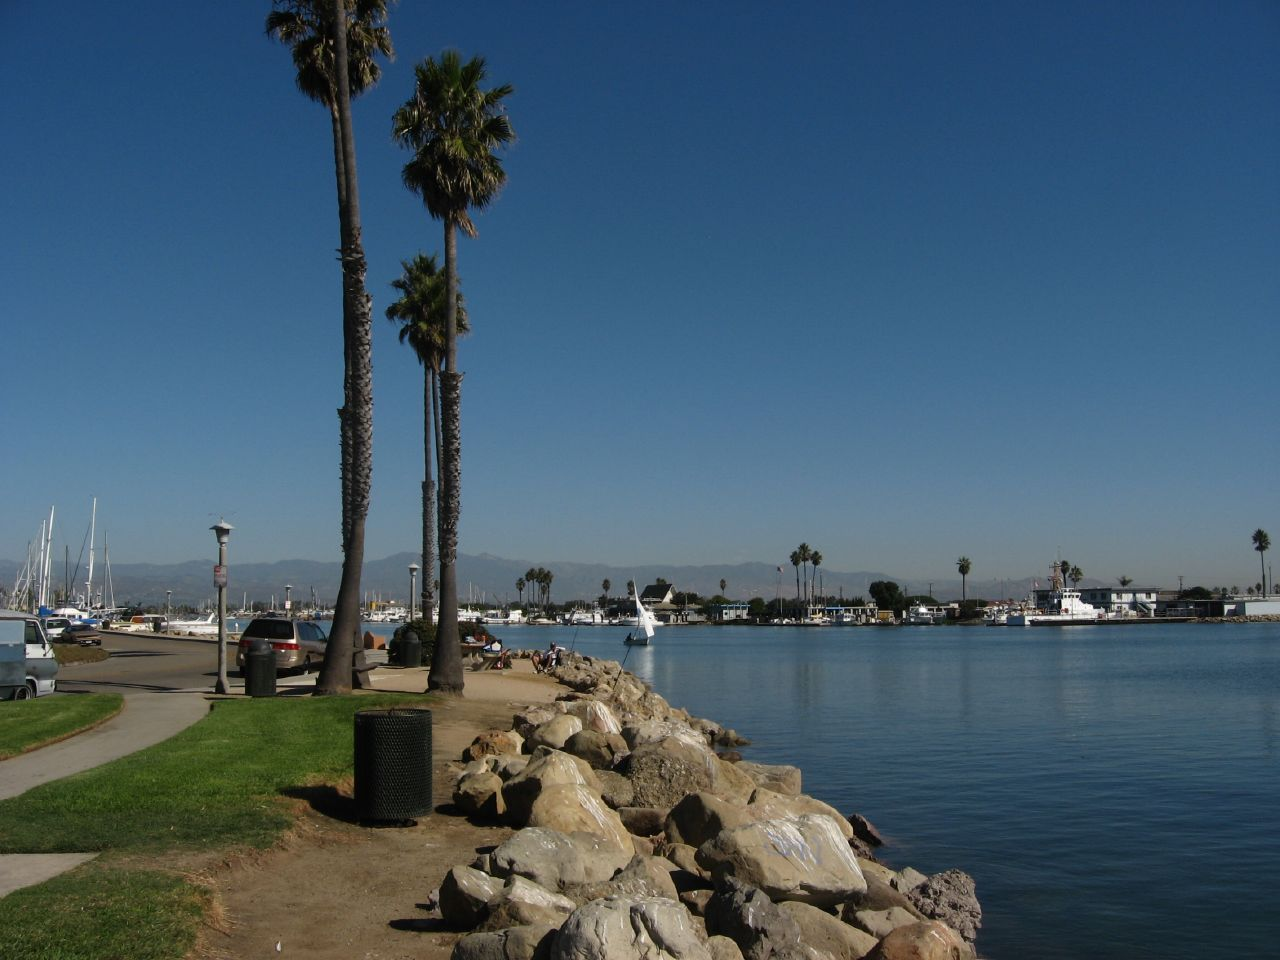 America's Small Towns: Oxnard, California